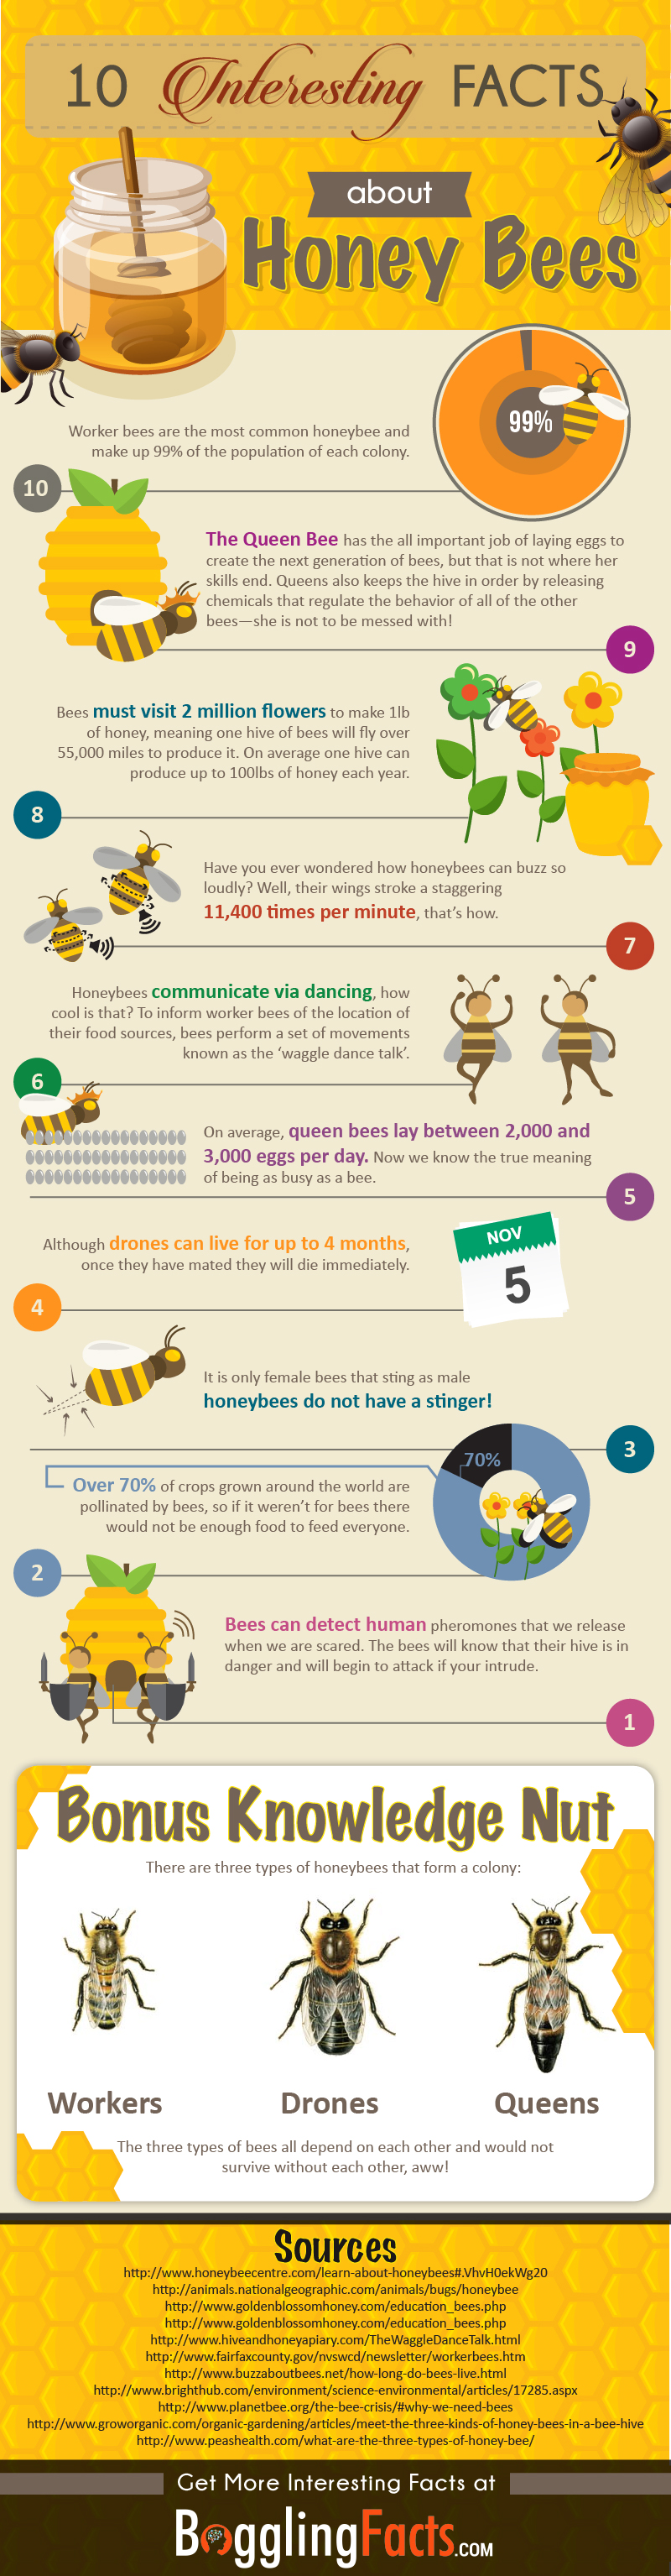 10 Fascinating Honey Bee Facts You Didn't Know